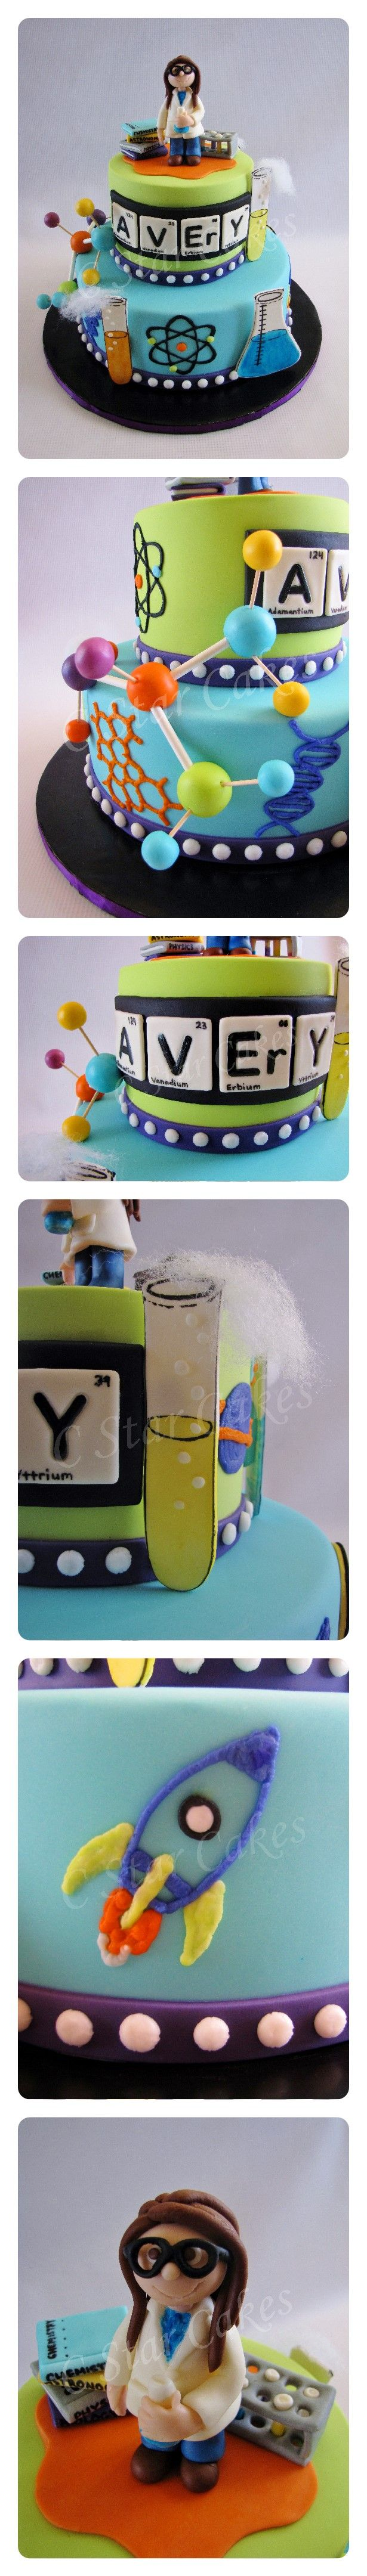 Avery's Science Themed cake by C Star Cakes #cstarcakes                                                                                                                                                                                 More